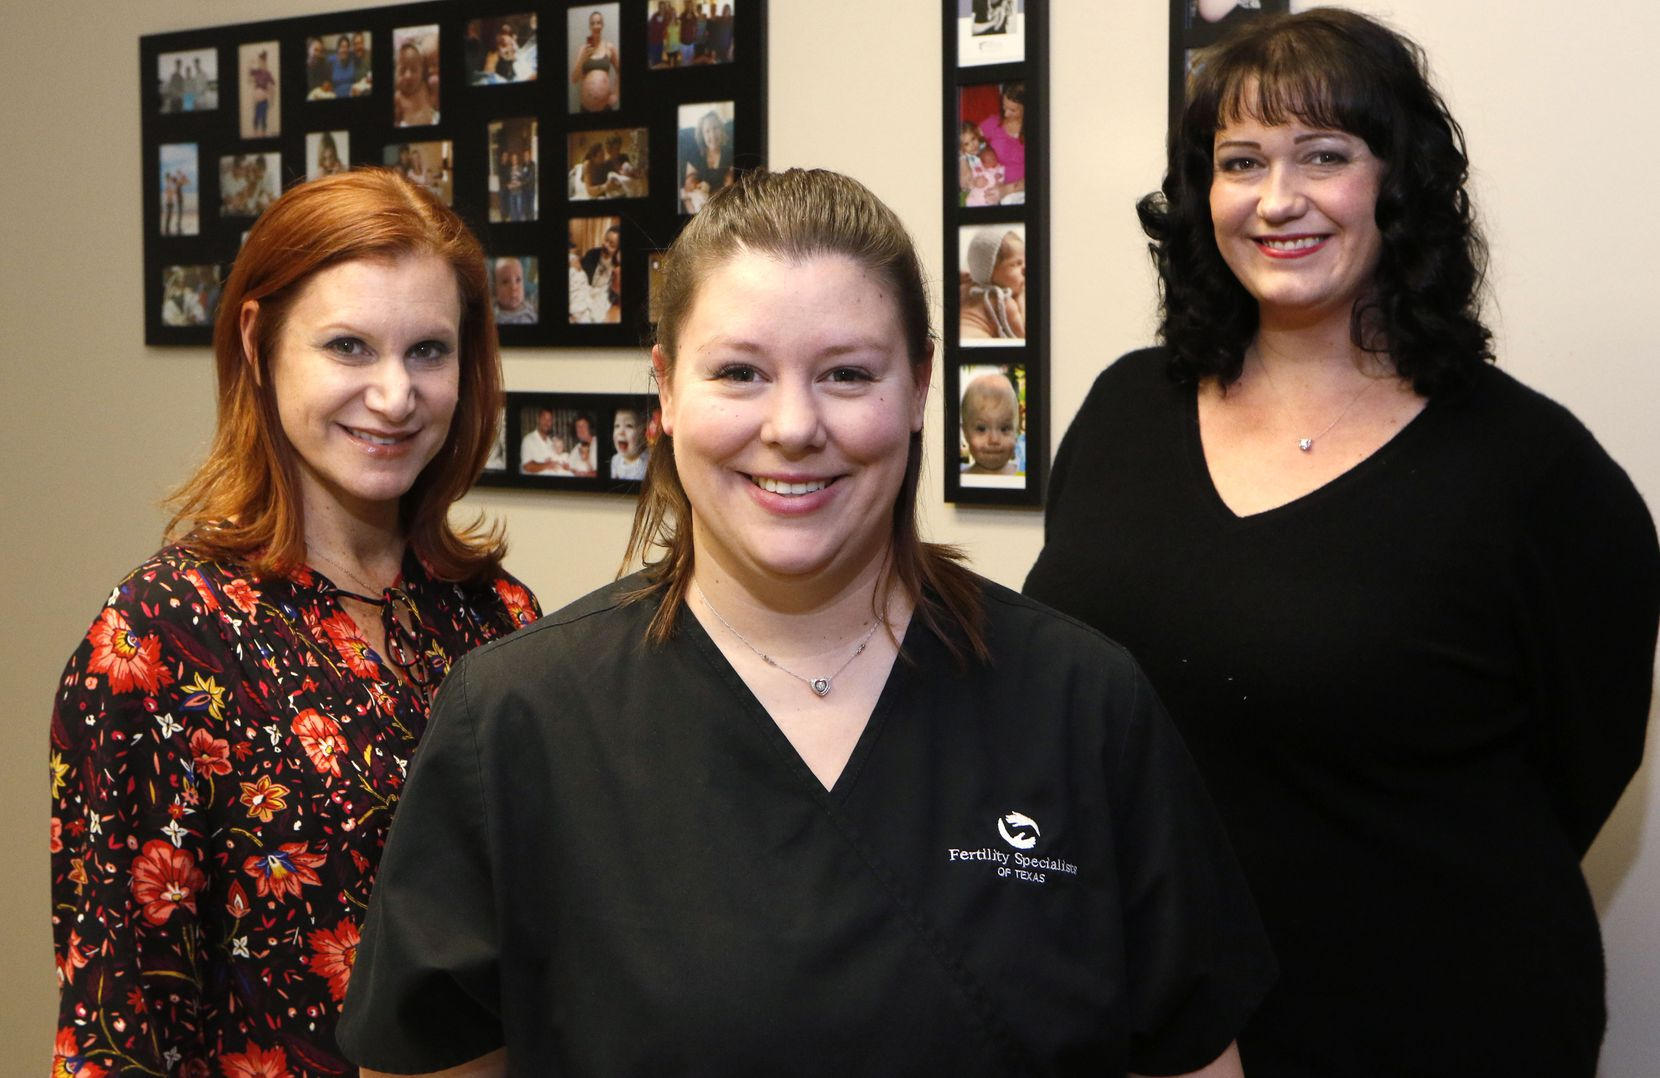 Ashley Moore (center), of Rockwall, (center), a surrogate who is currently pregnant for a couple; Jill Errera (left), of Dallas, who has been a surrogate four times; and Stephanie Scott, co-owner of Simple Surrogacy, who has also has been a surrogate.